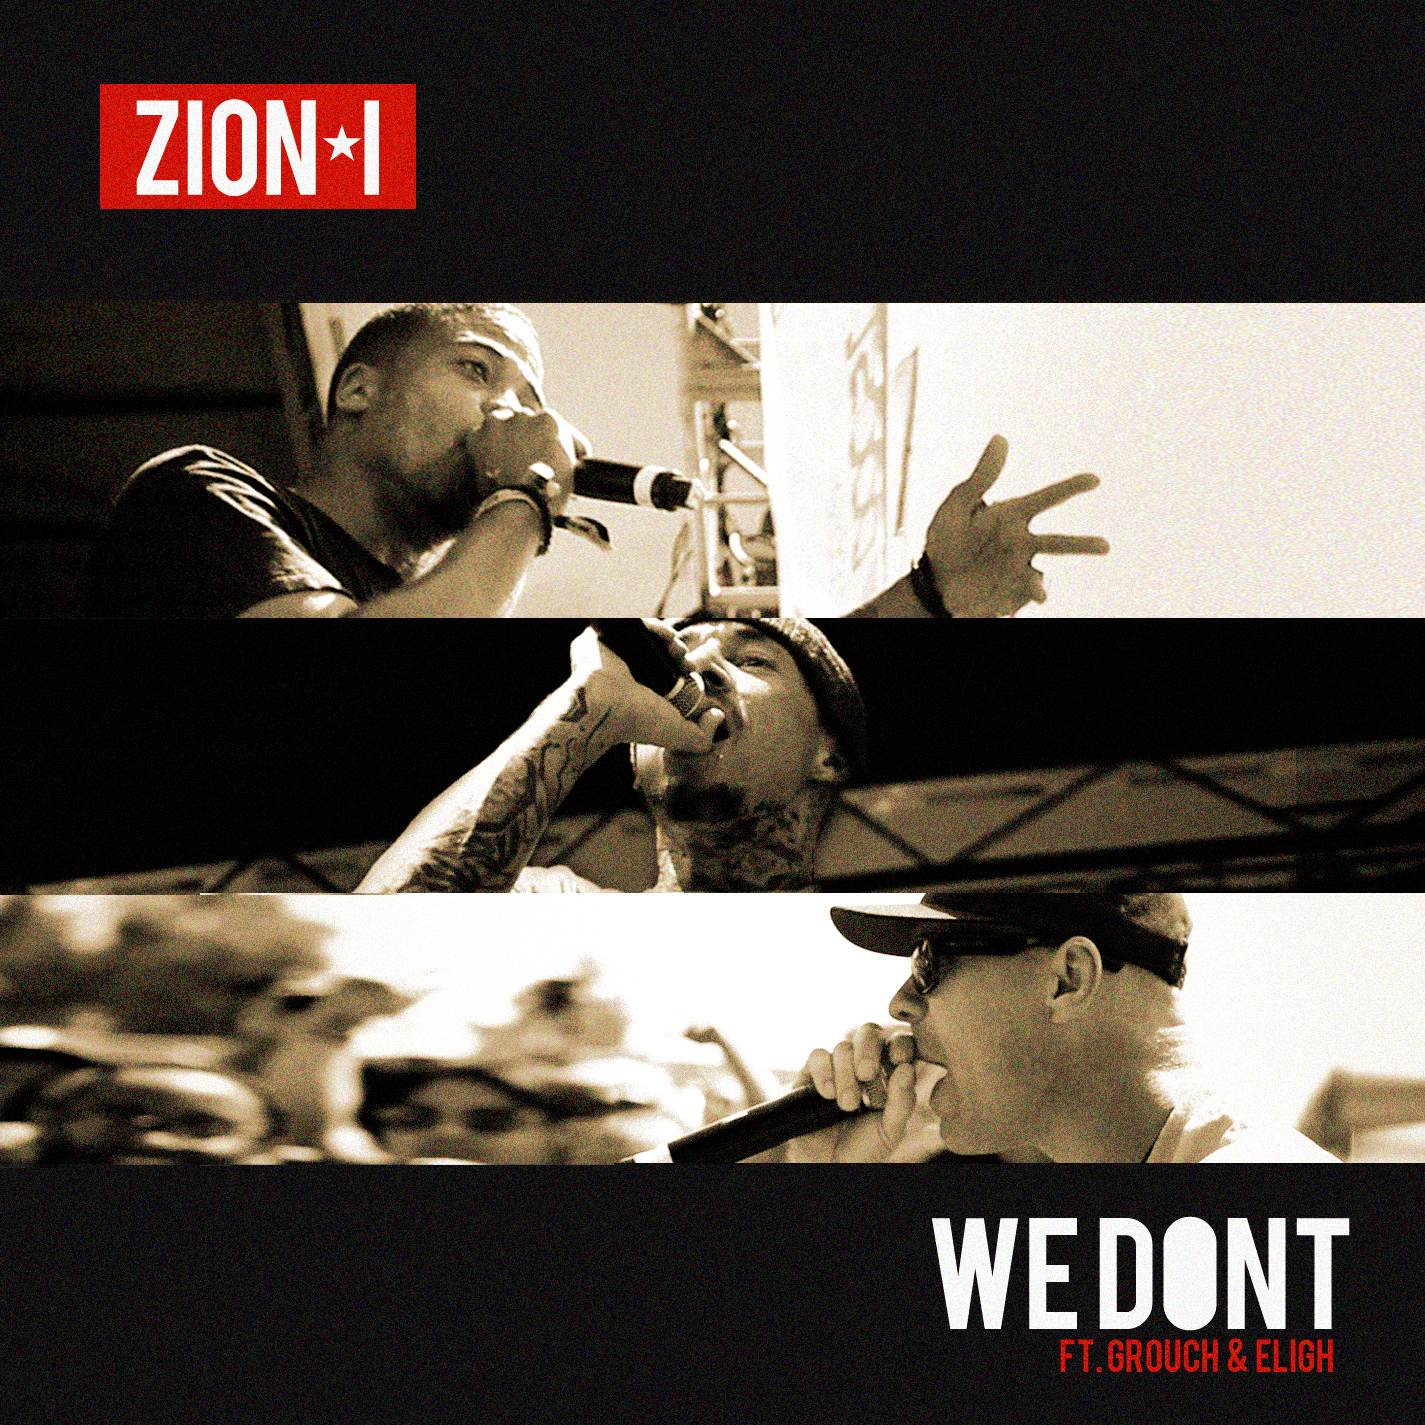 Zion I - We Don't ft. Grouch & Eligh [mp3]